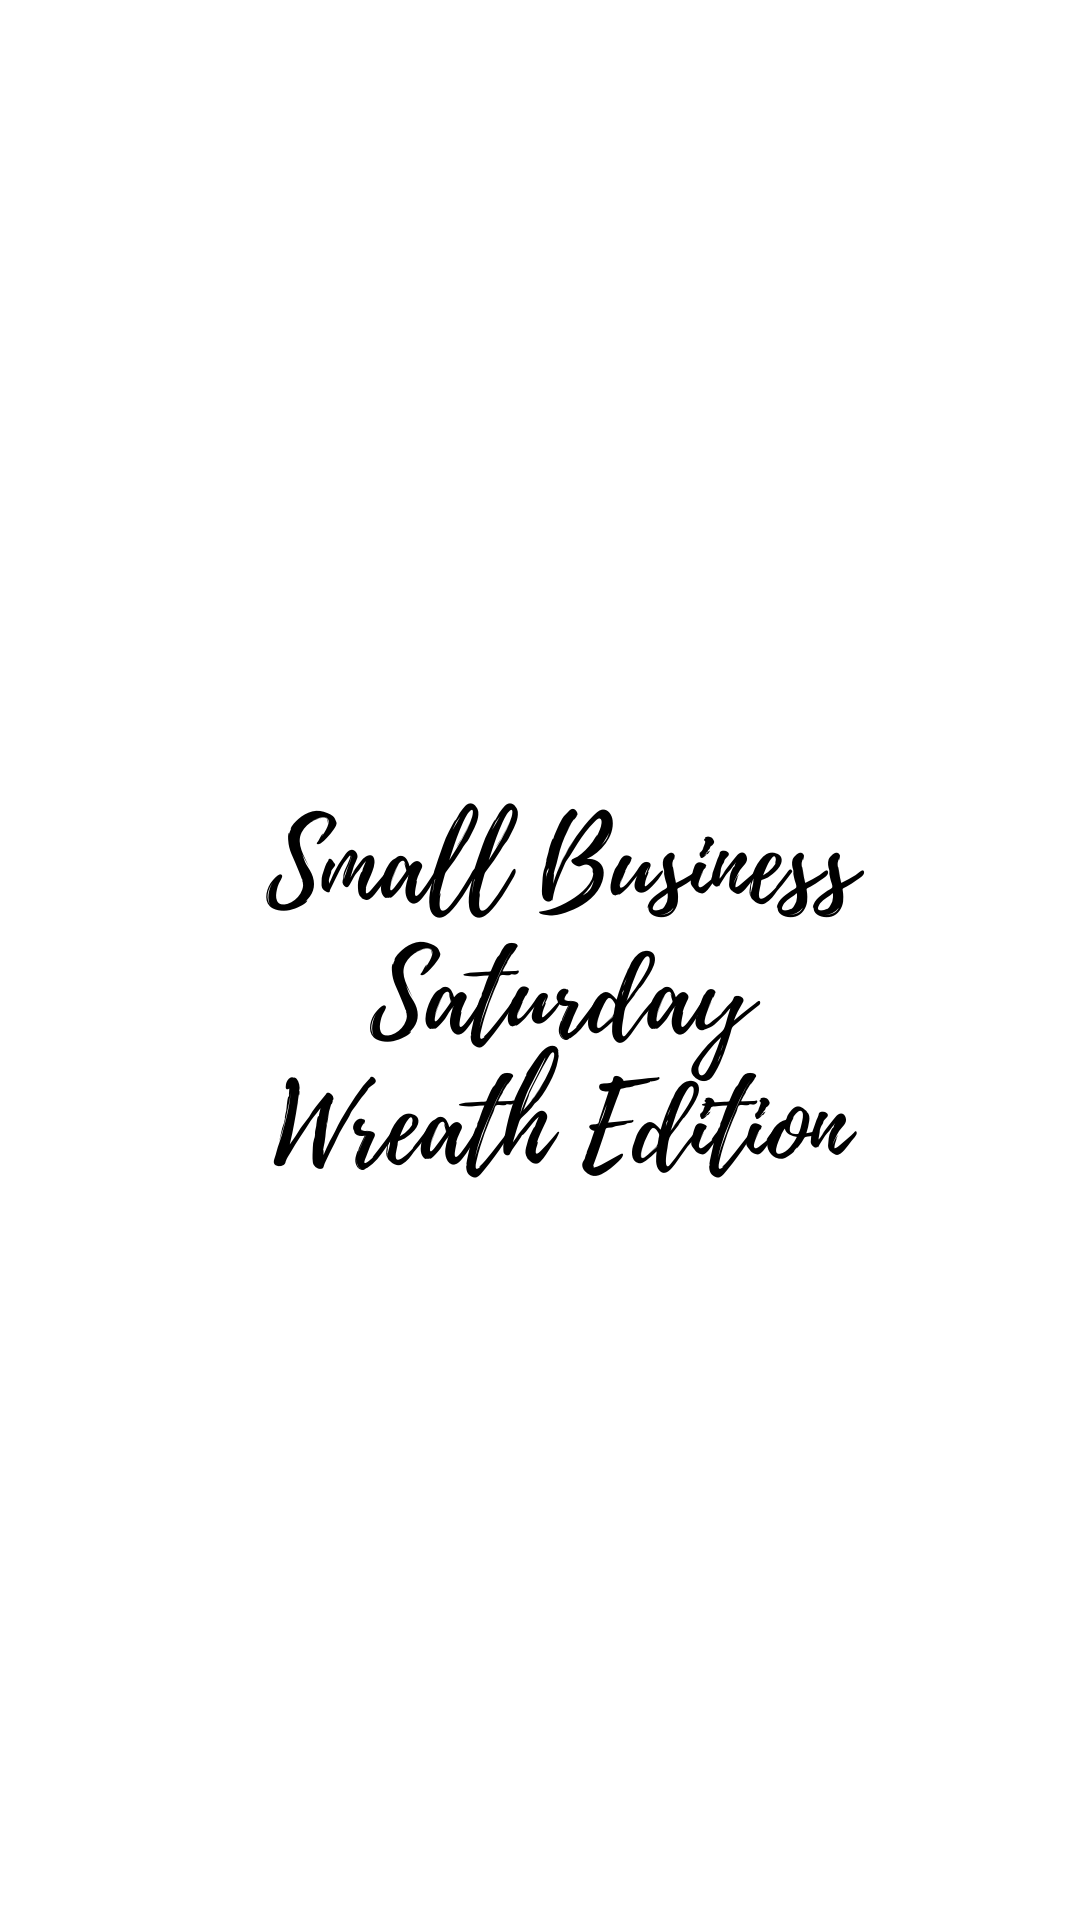 Small Business Saturday–Wreath Edition